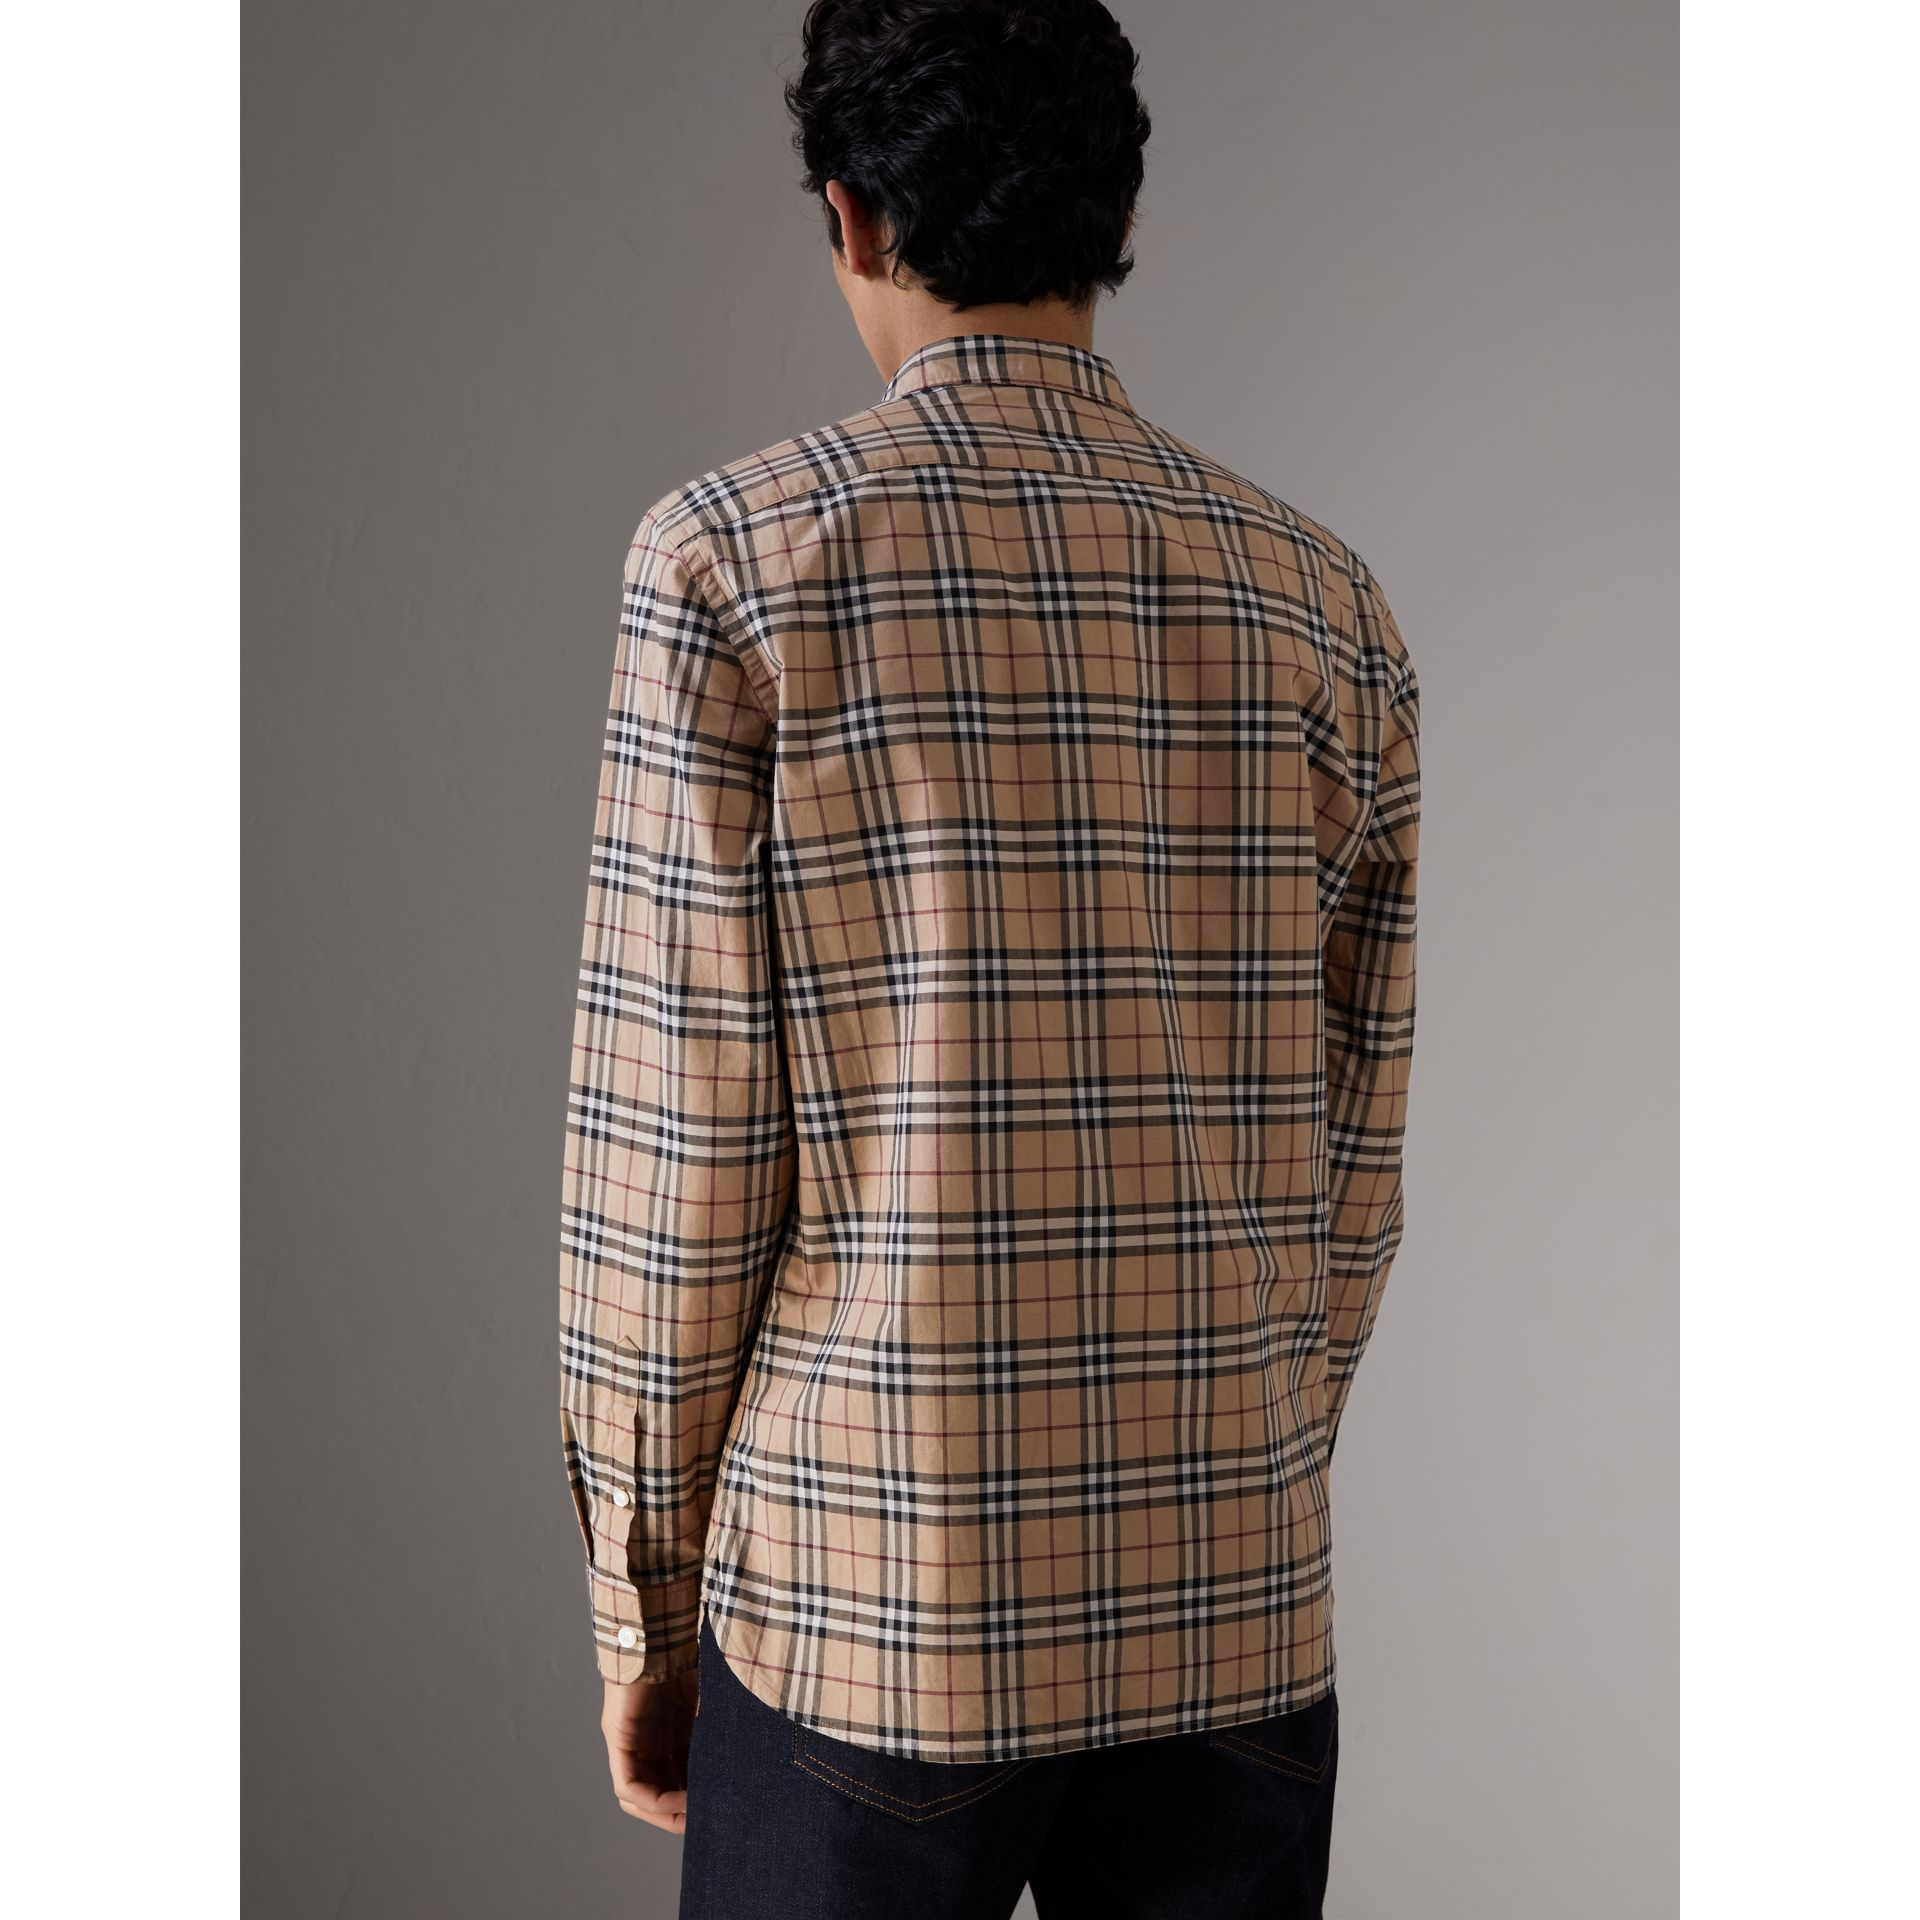 Check Cotton Shirt in Camel - Men | Burberry Singapore - gallery image 2